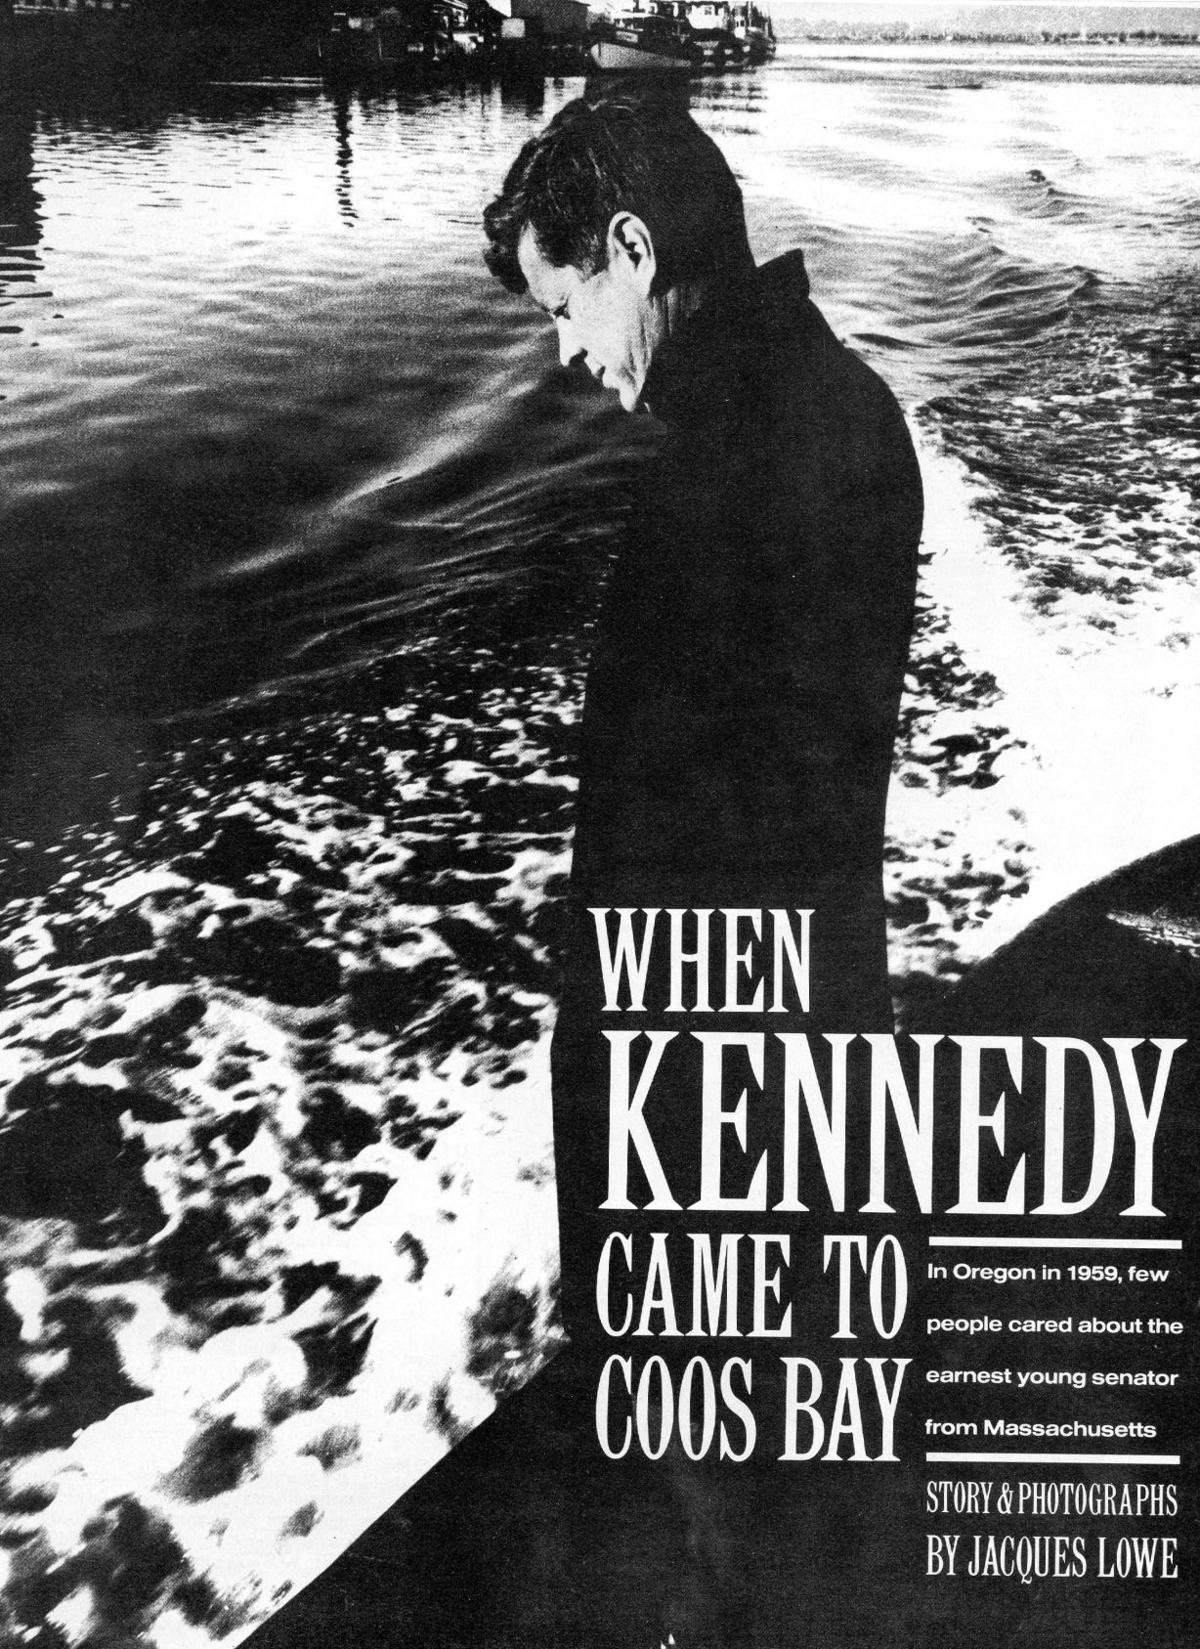 When Kennedy came to Coos Bay